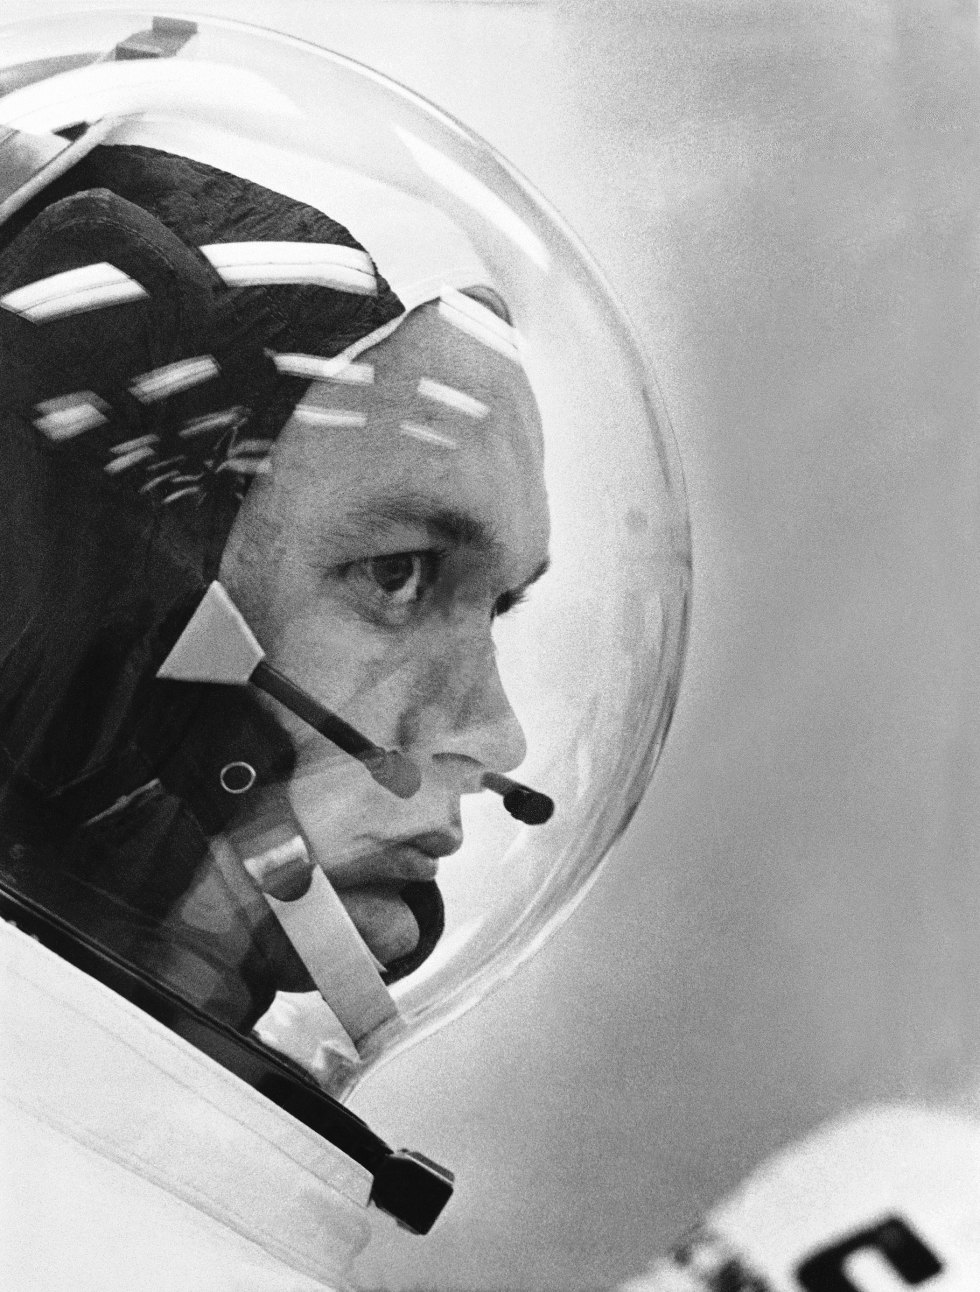 Astronaut Michael Collins wears his space helmet for the Apollo 11 moon mission, on July 20, 1969.